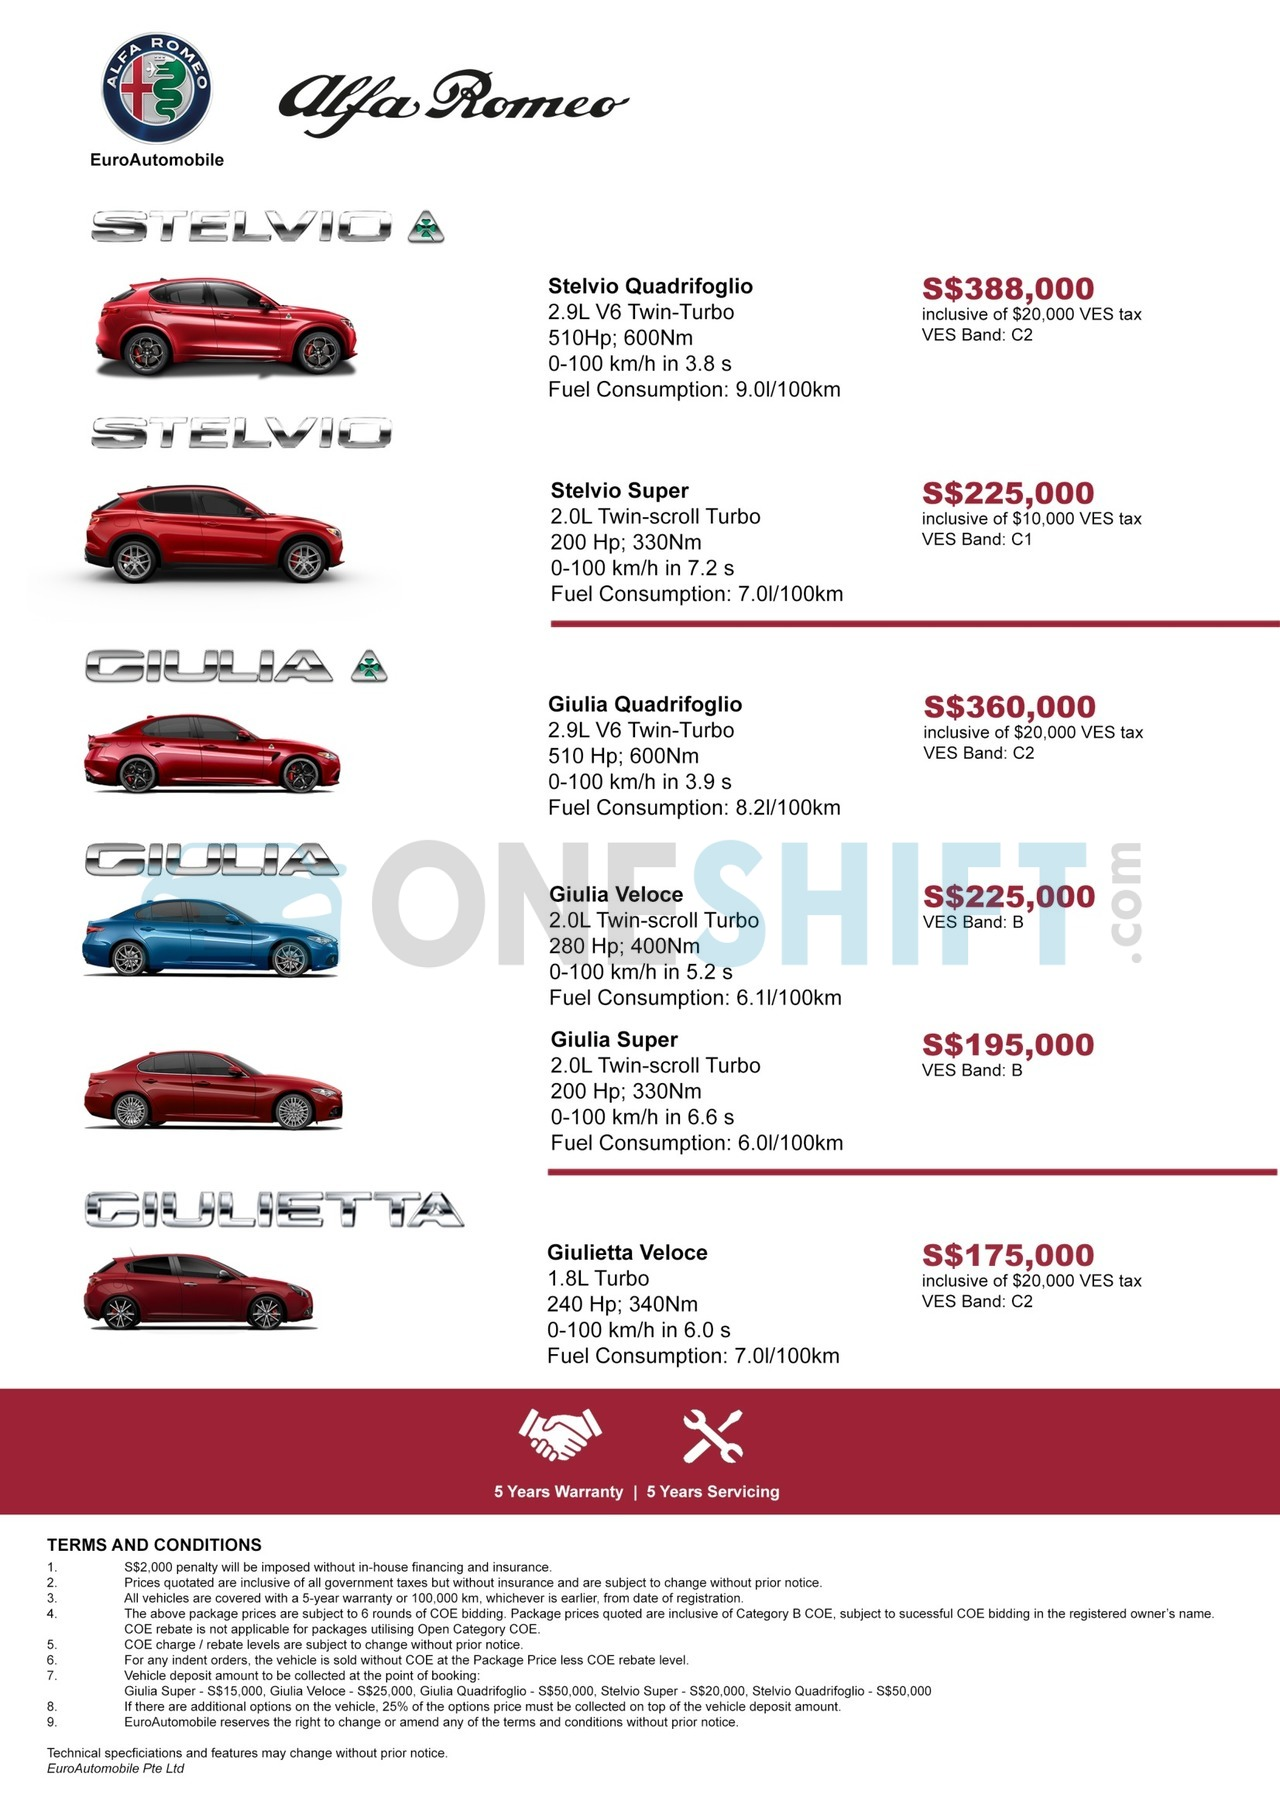 Alfa Romeo Singapore Printed Car Price List Oneshift Com